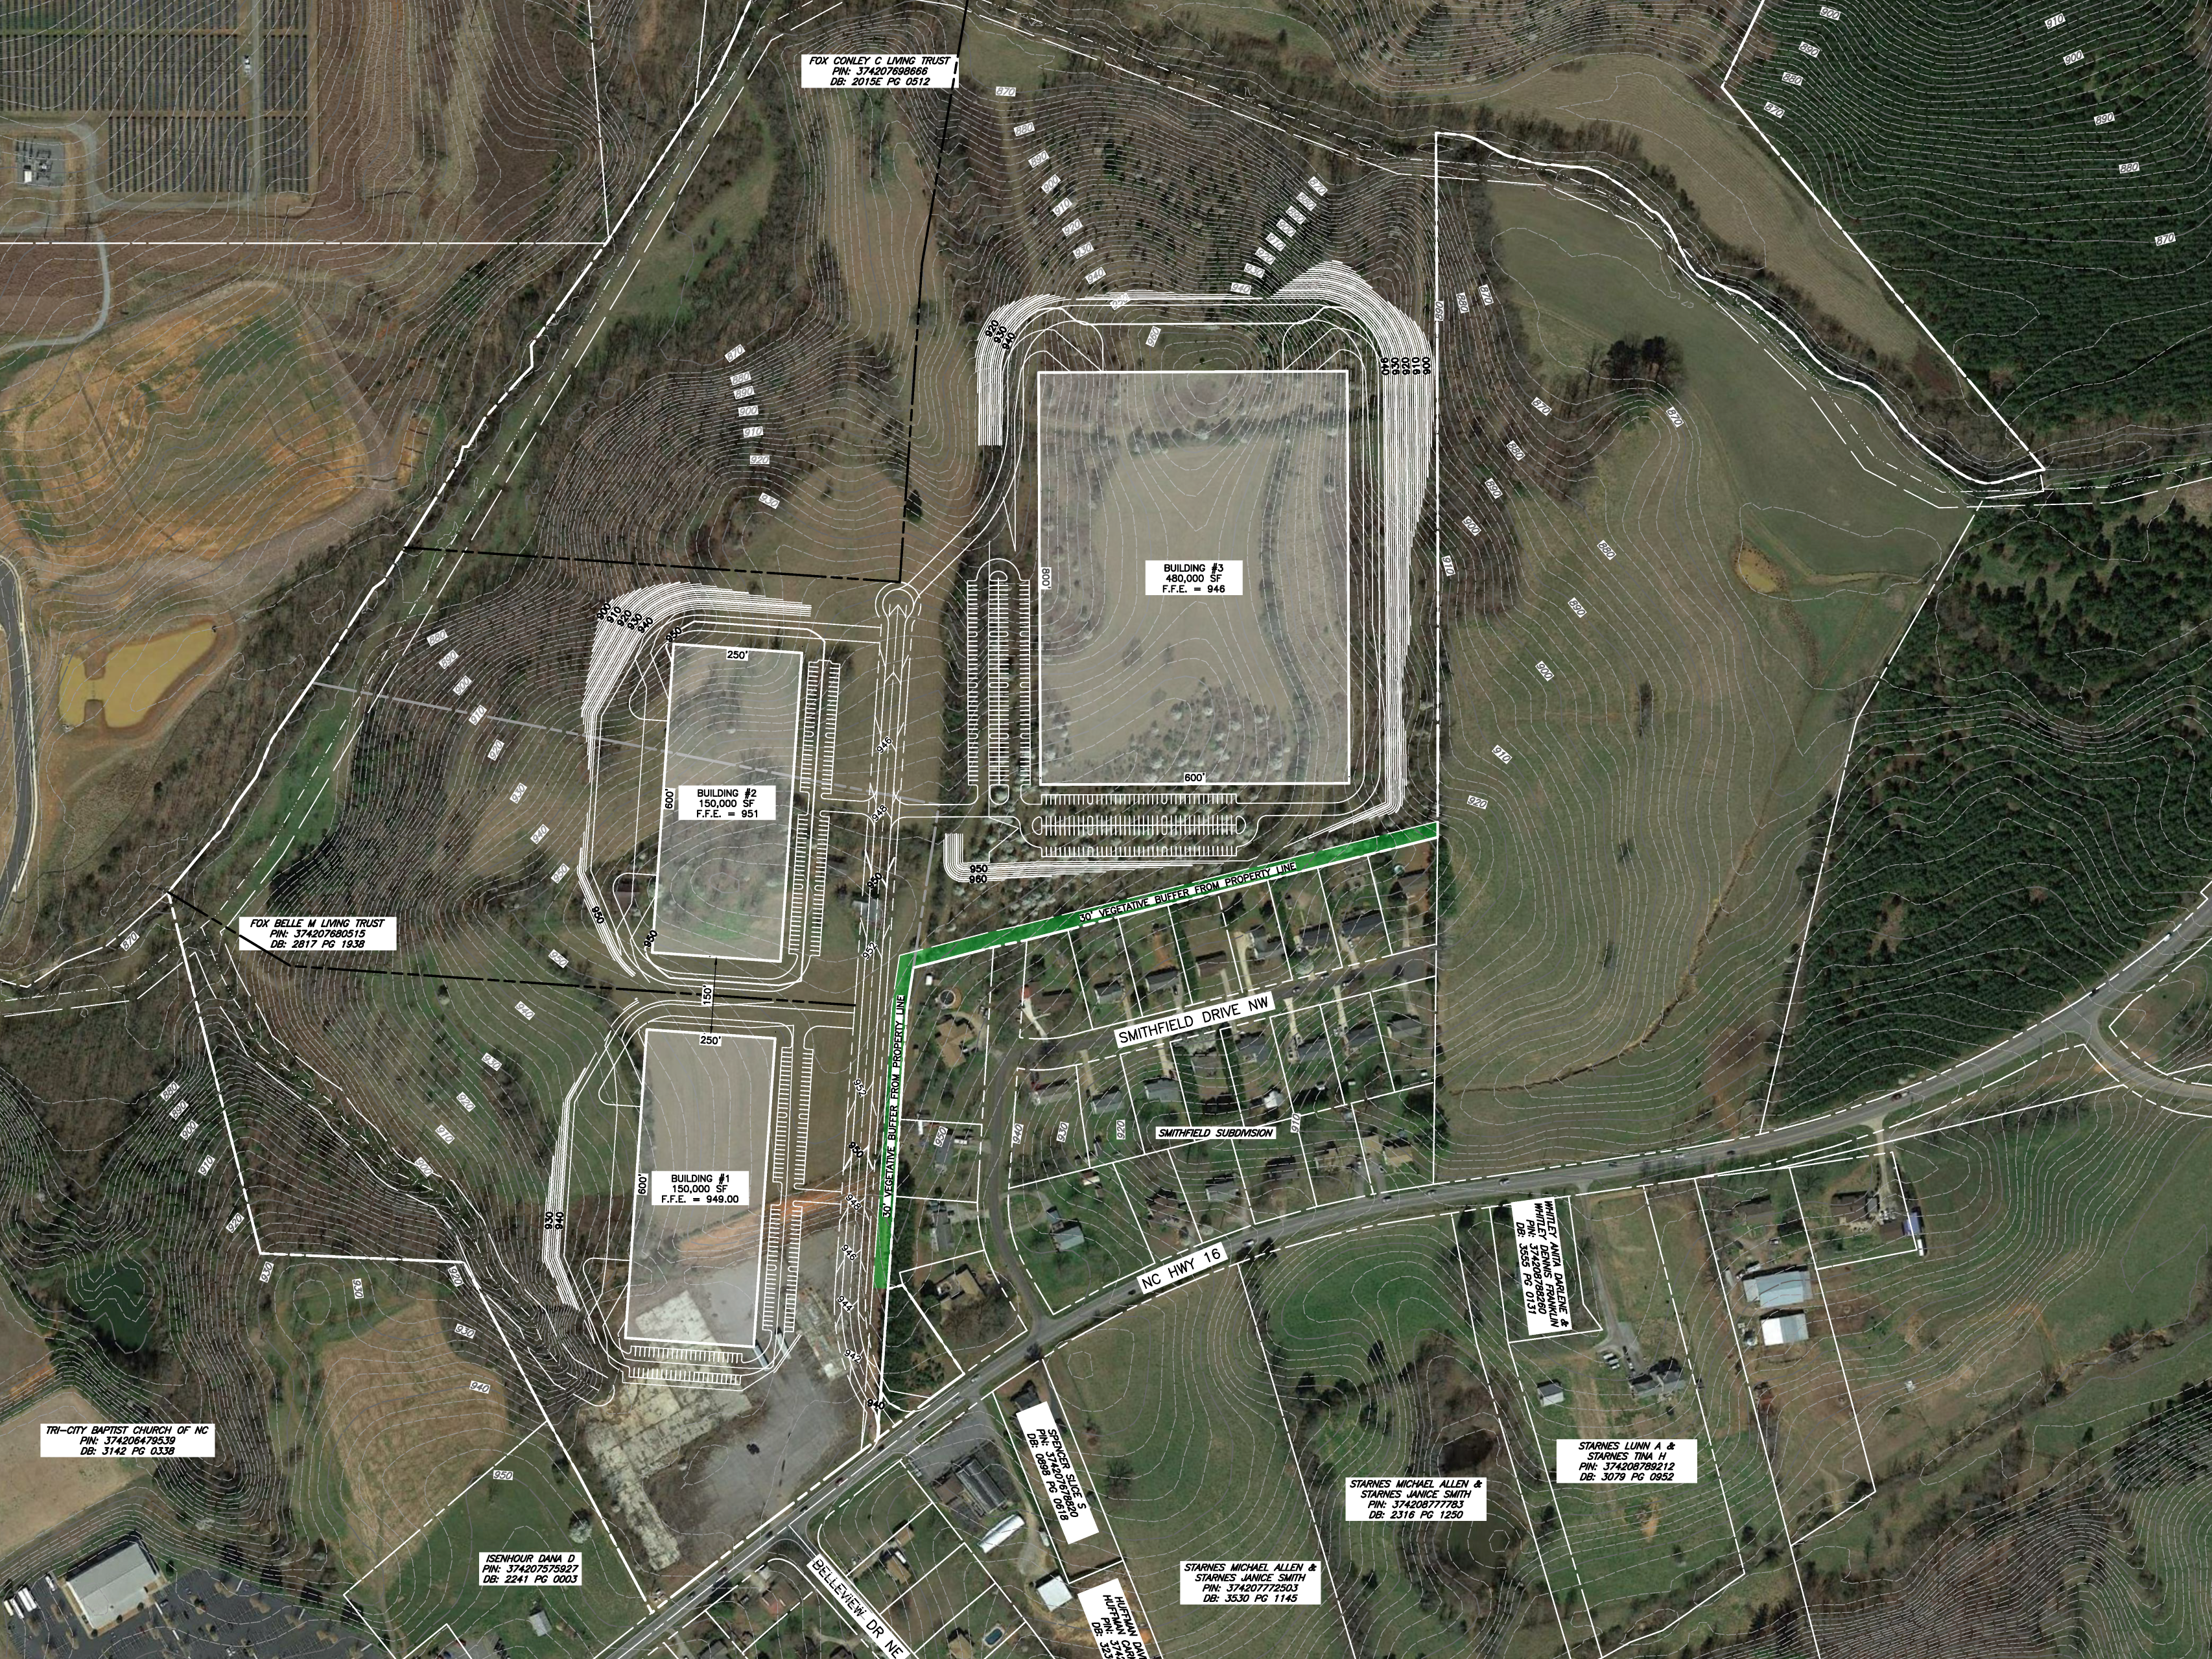 Conceptual Site Plan showing a 480,000 sf building and two 150,000 sf buildings.